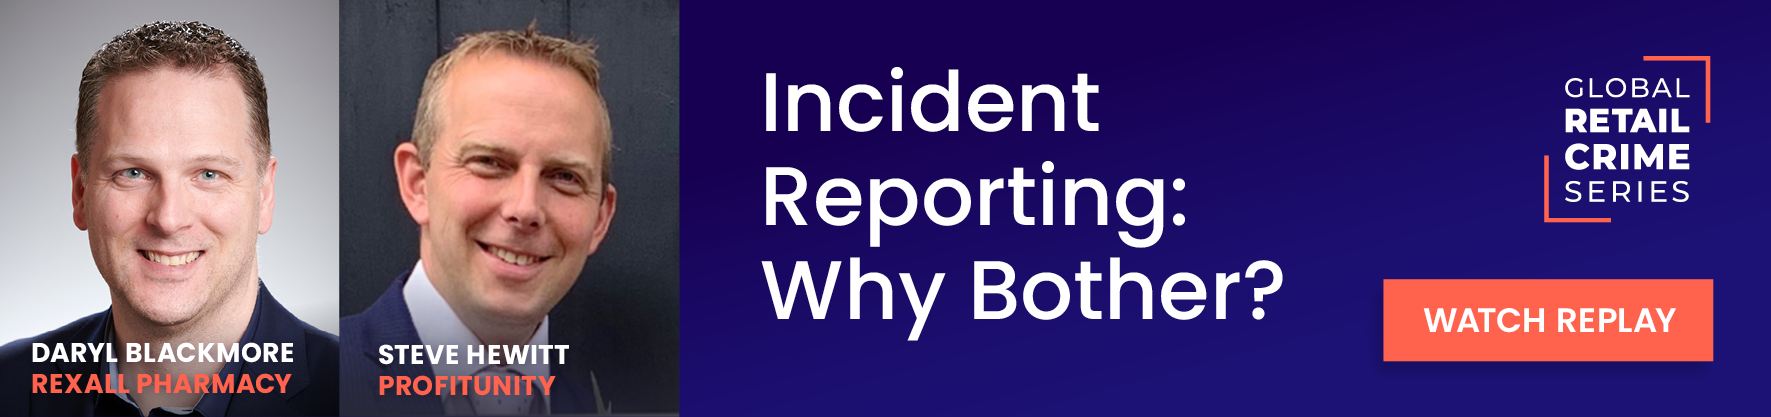 Incident reporting: why bother?